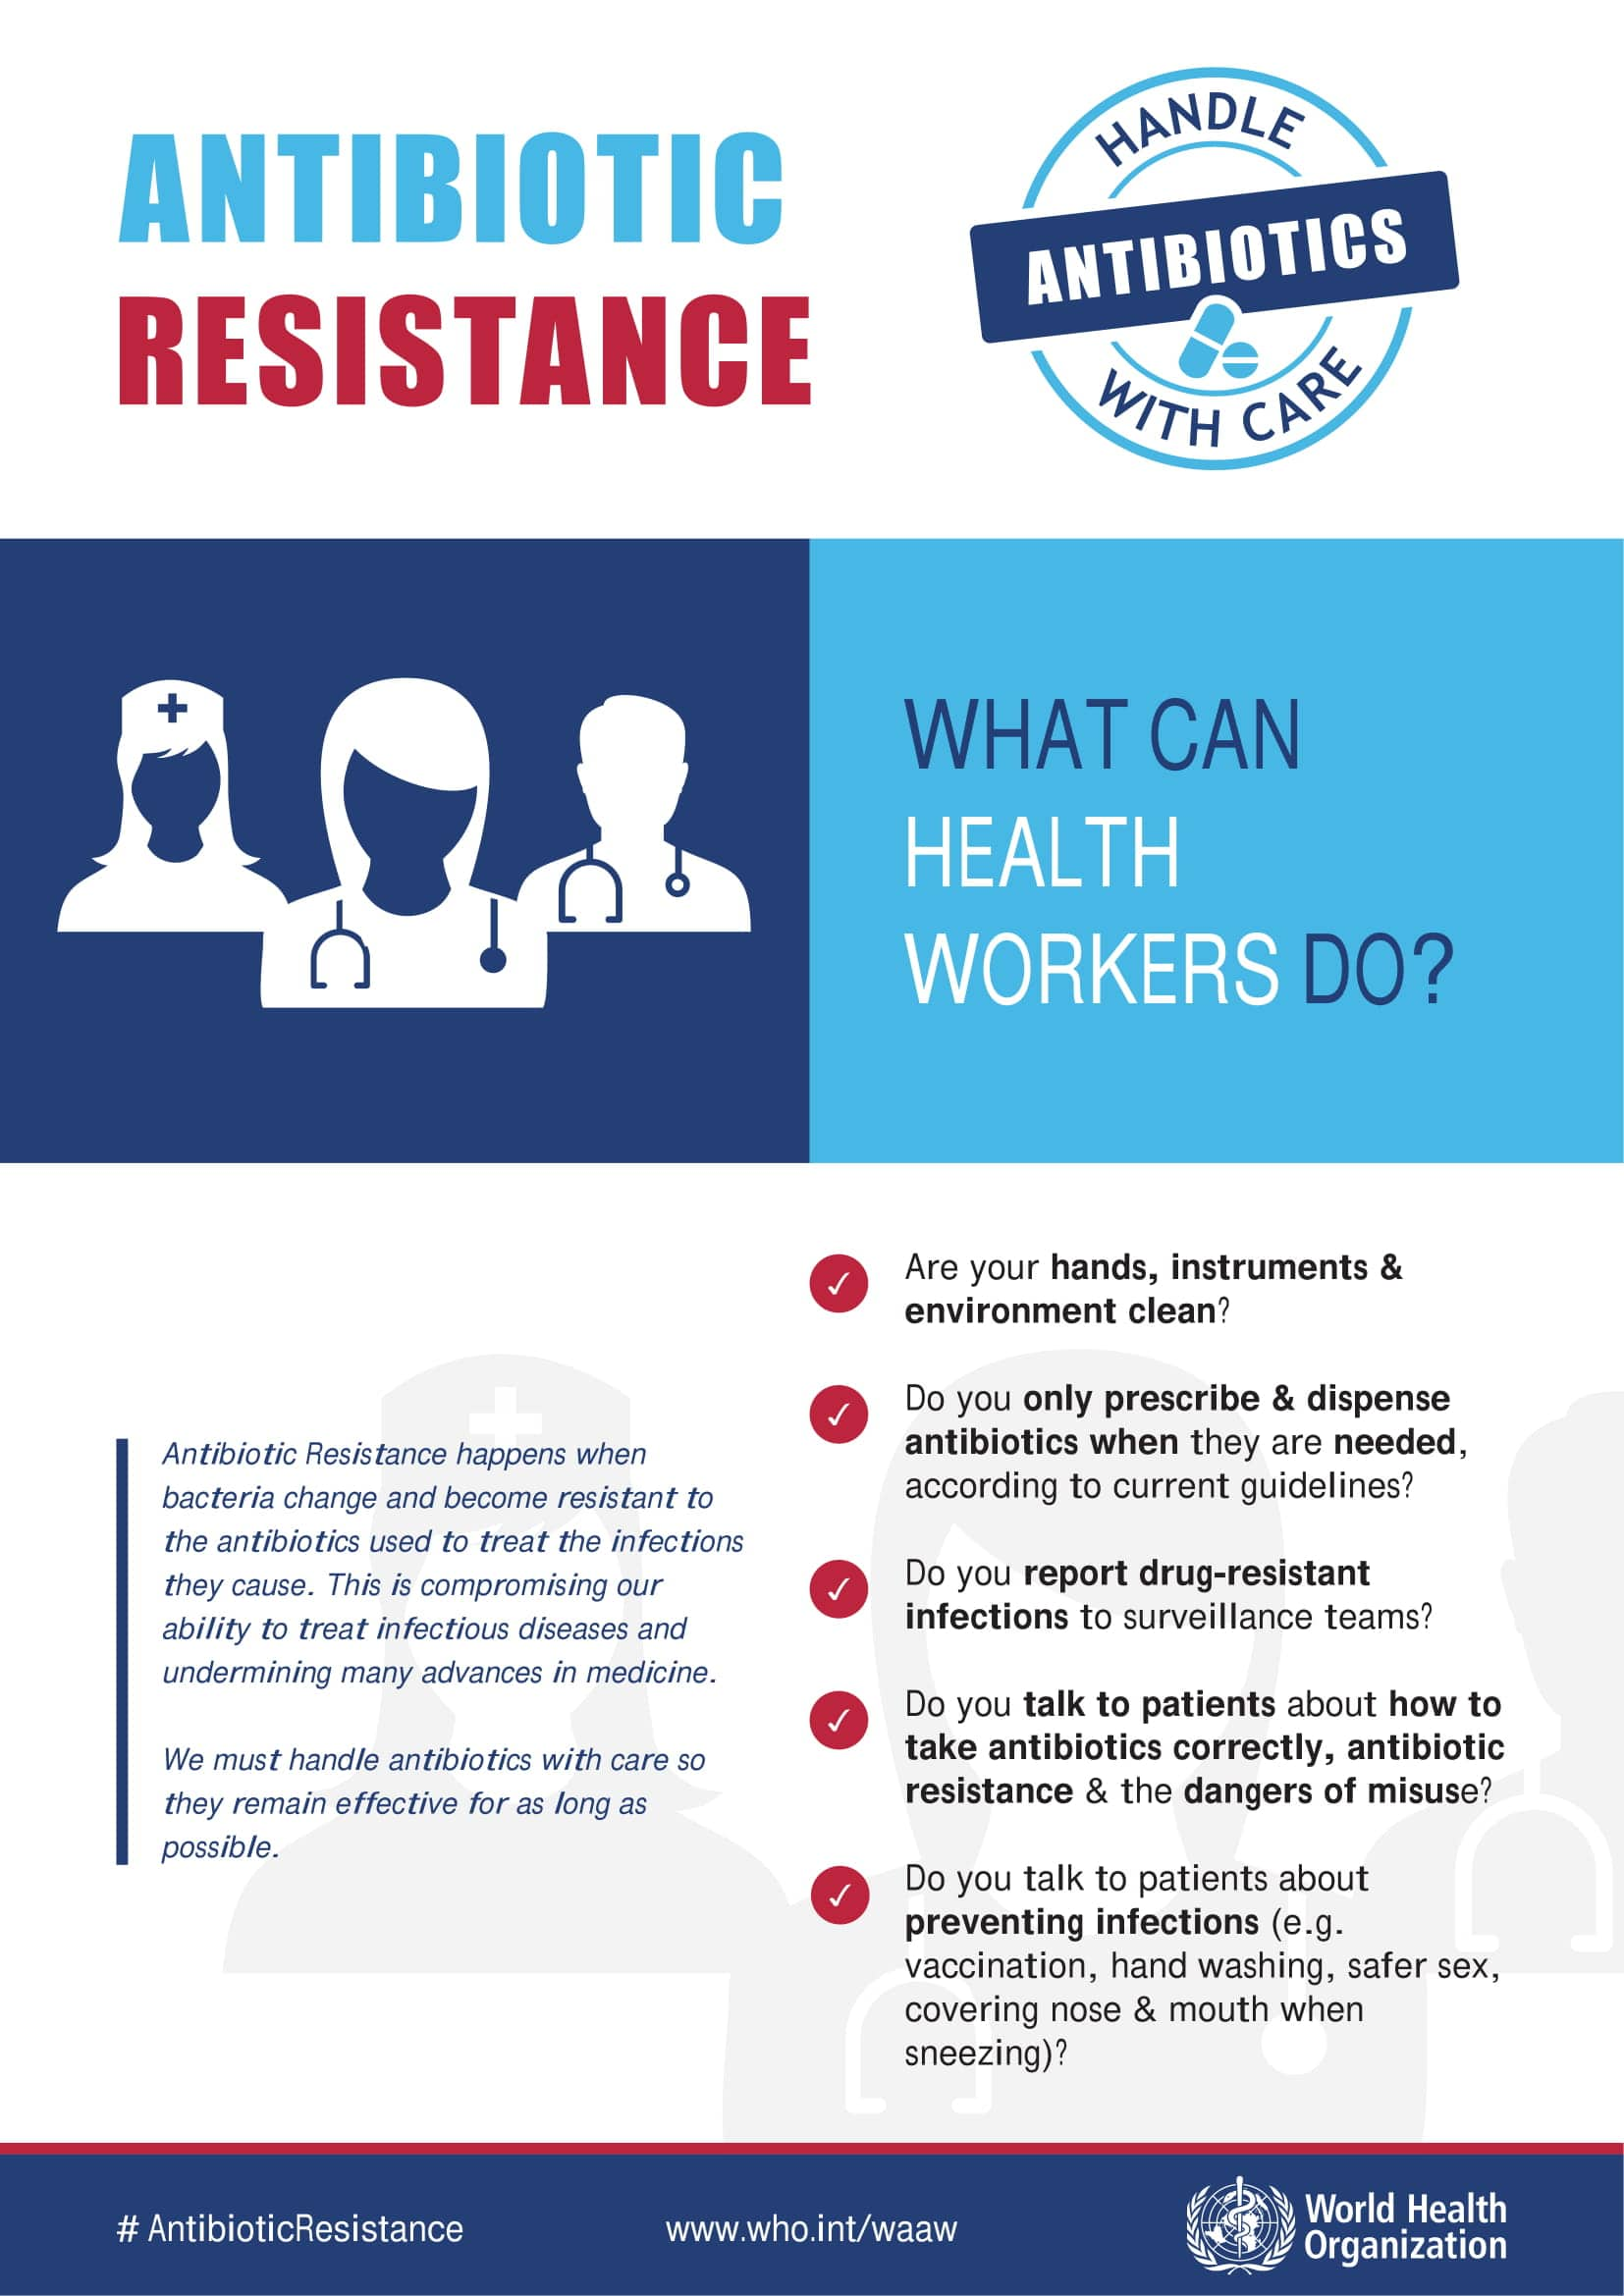 What can Health workers do?